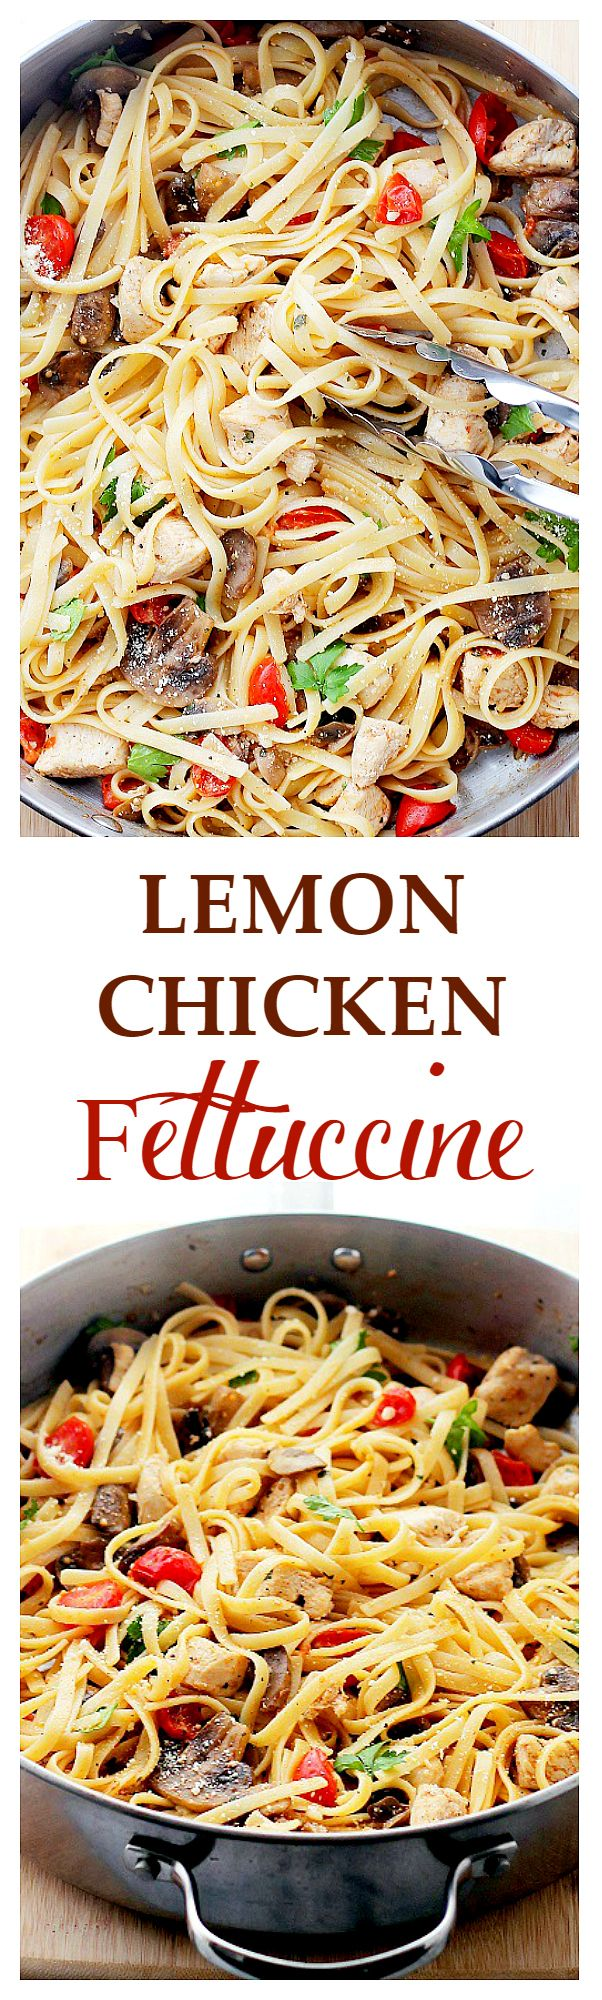 30-MINUTE Lemon Chicken Fettuccine is a fresh, delicious and easy take on dinner, tossed with tomatoes, mushrooms, lemon juice and olive oil.